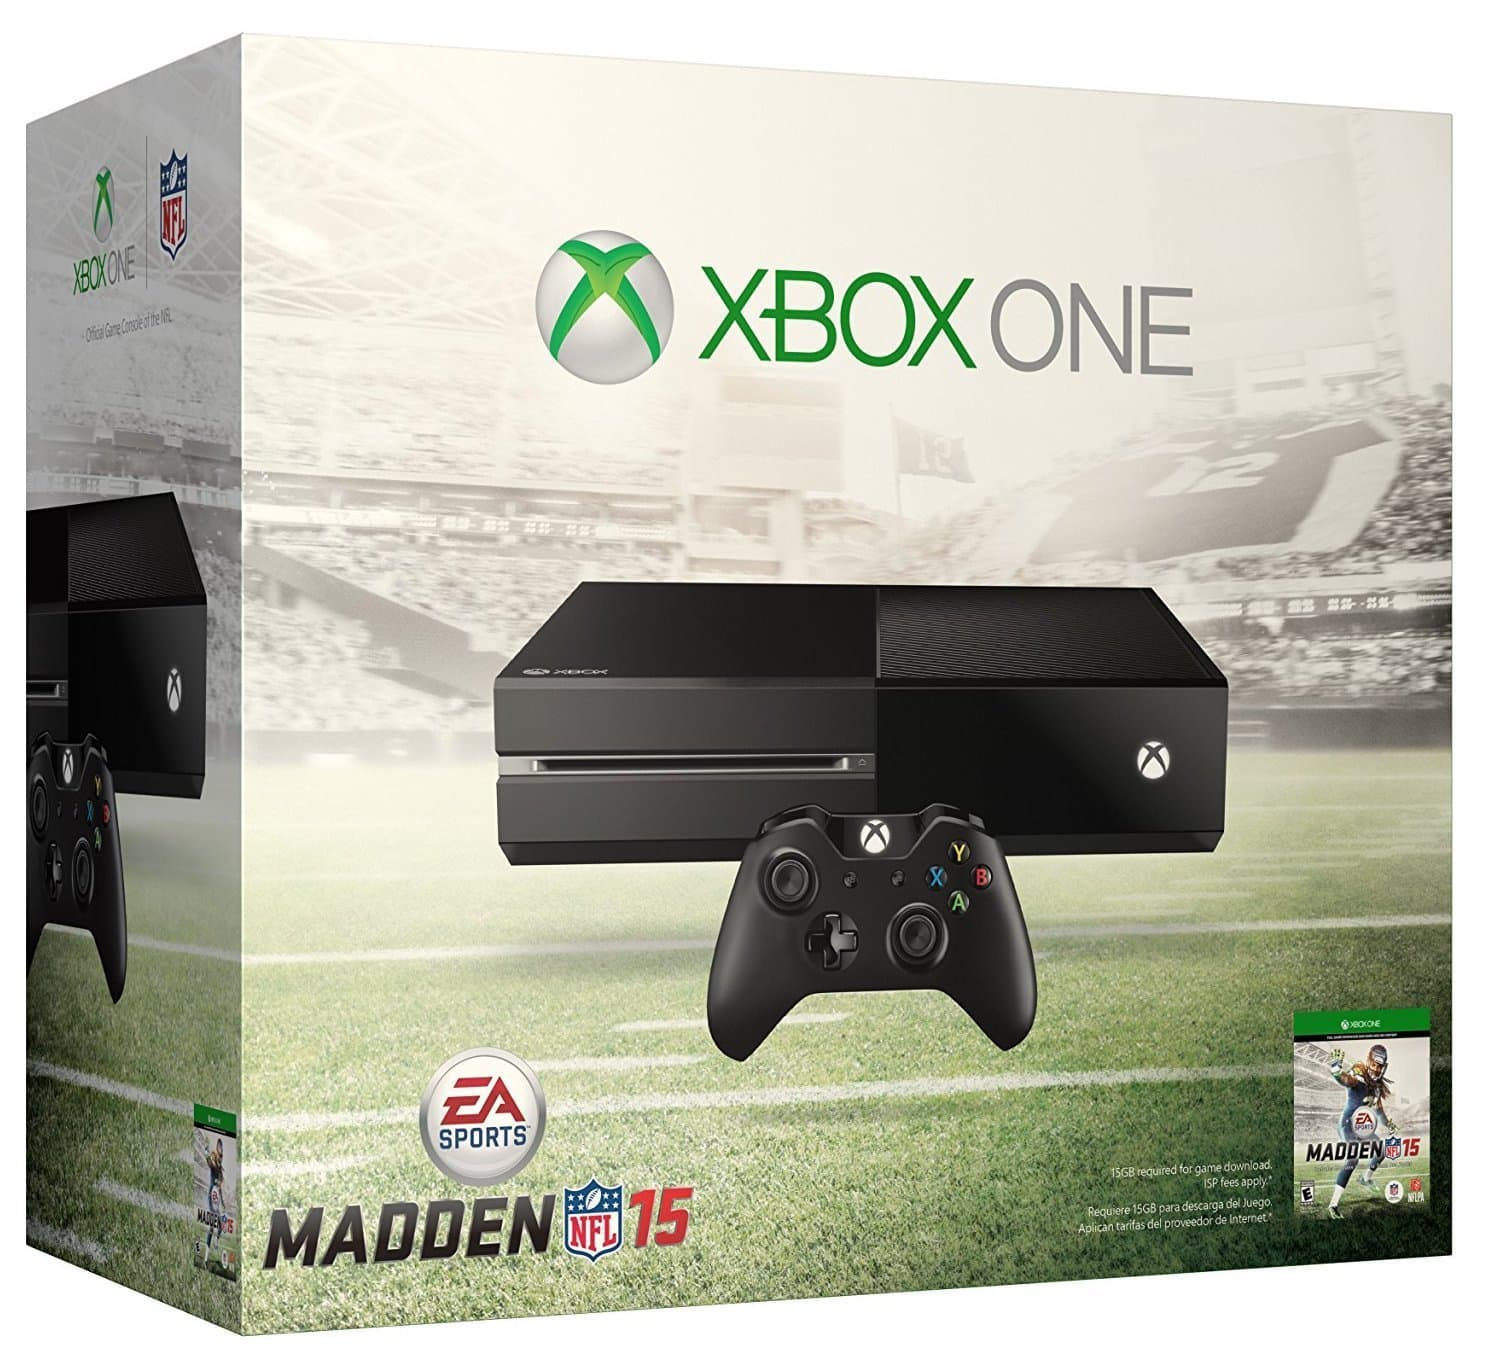 Xbox One Madden NFL 15 Console Bundle or PlayStation 4 Console  $360 each + Free Shipping